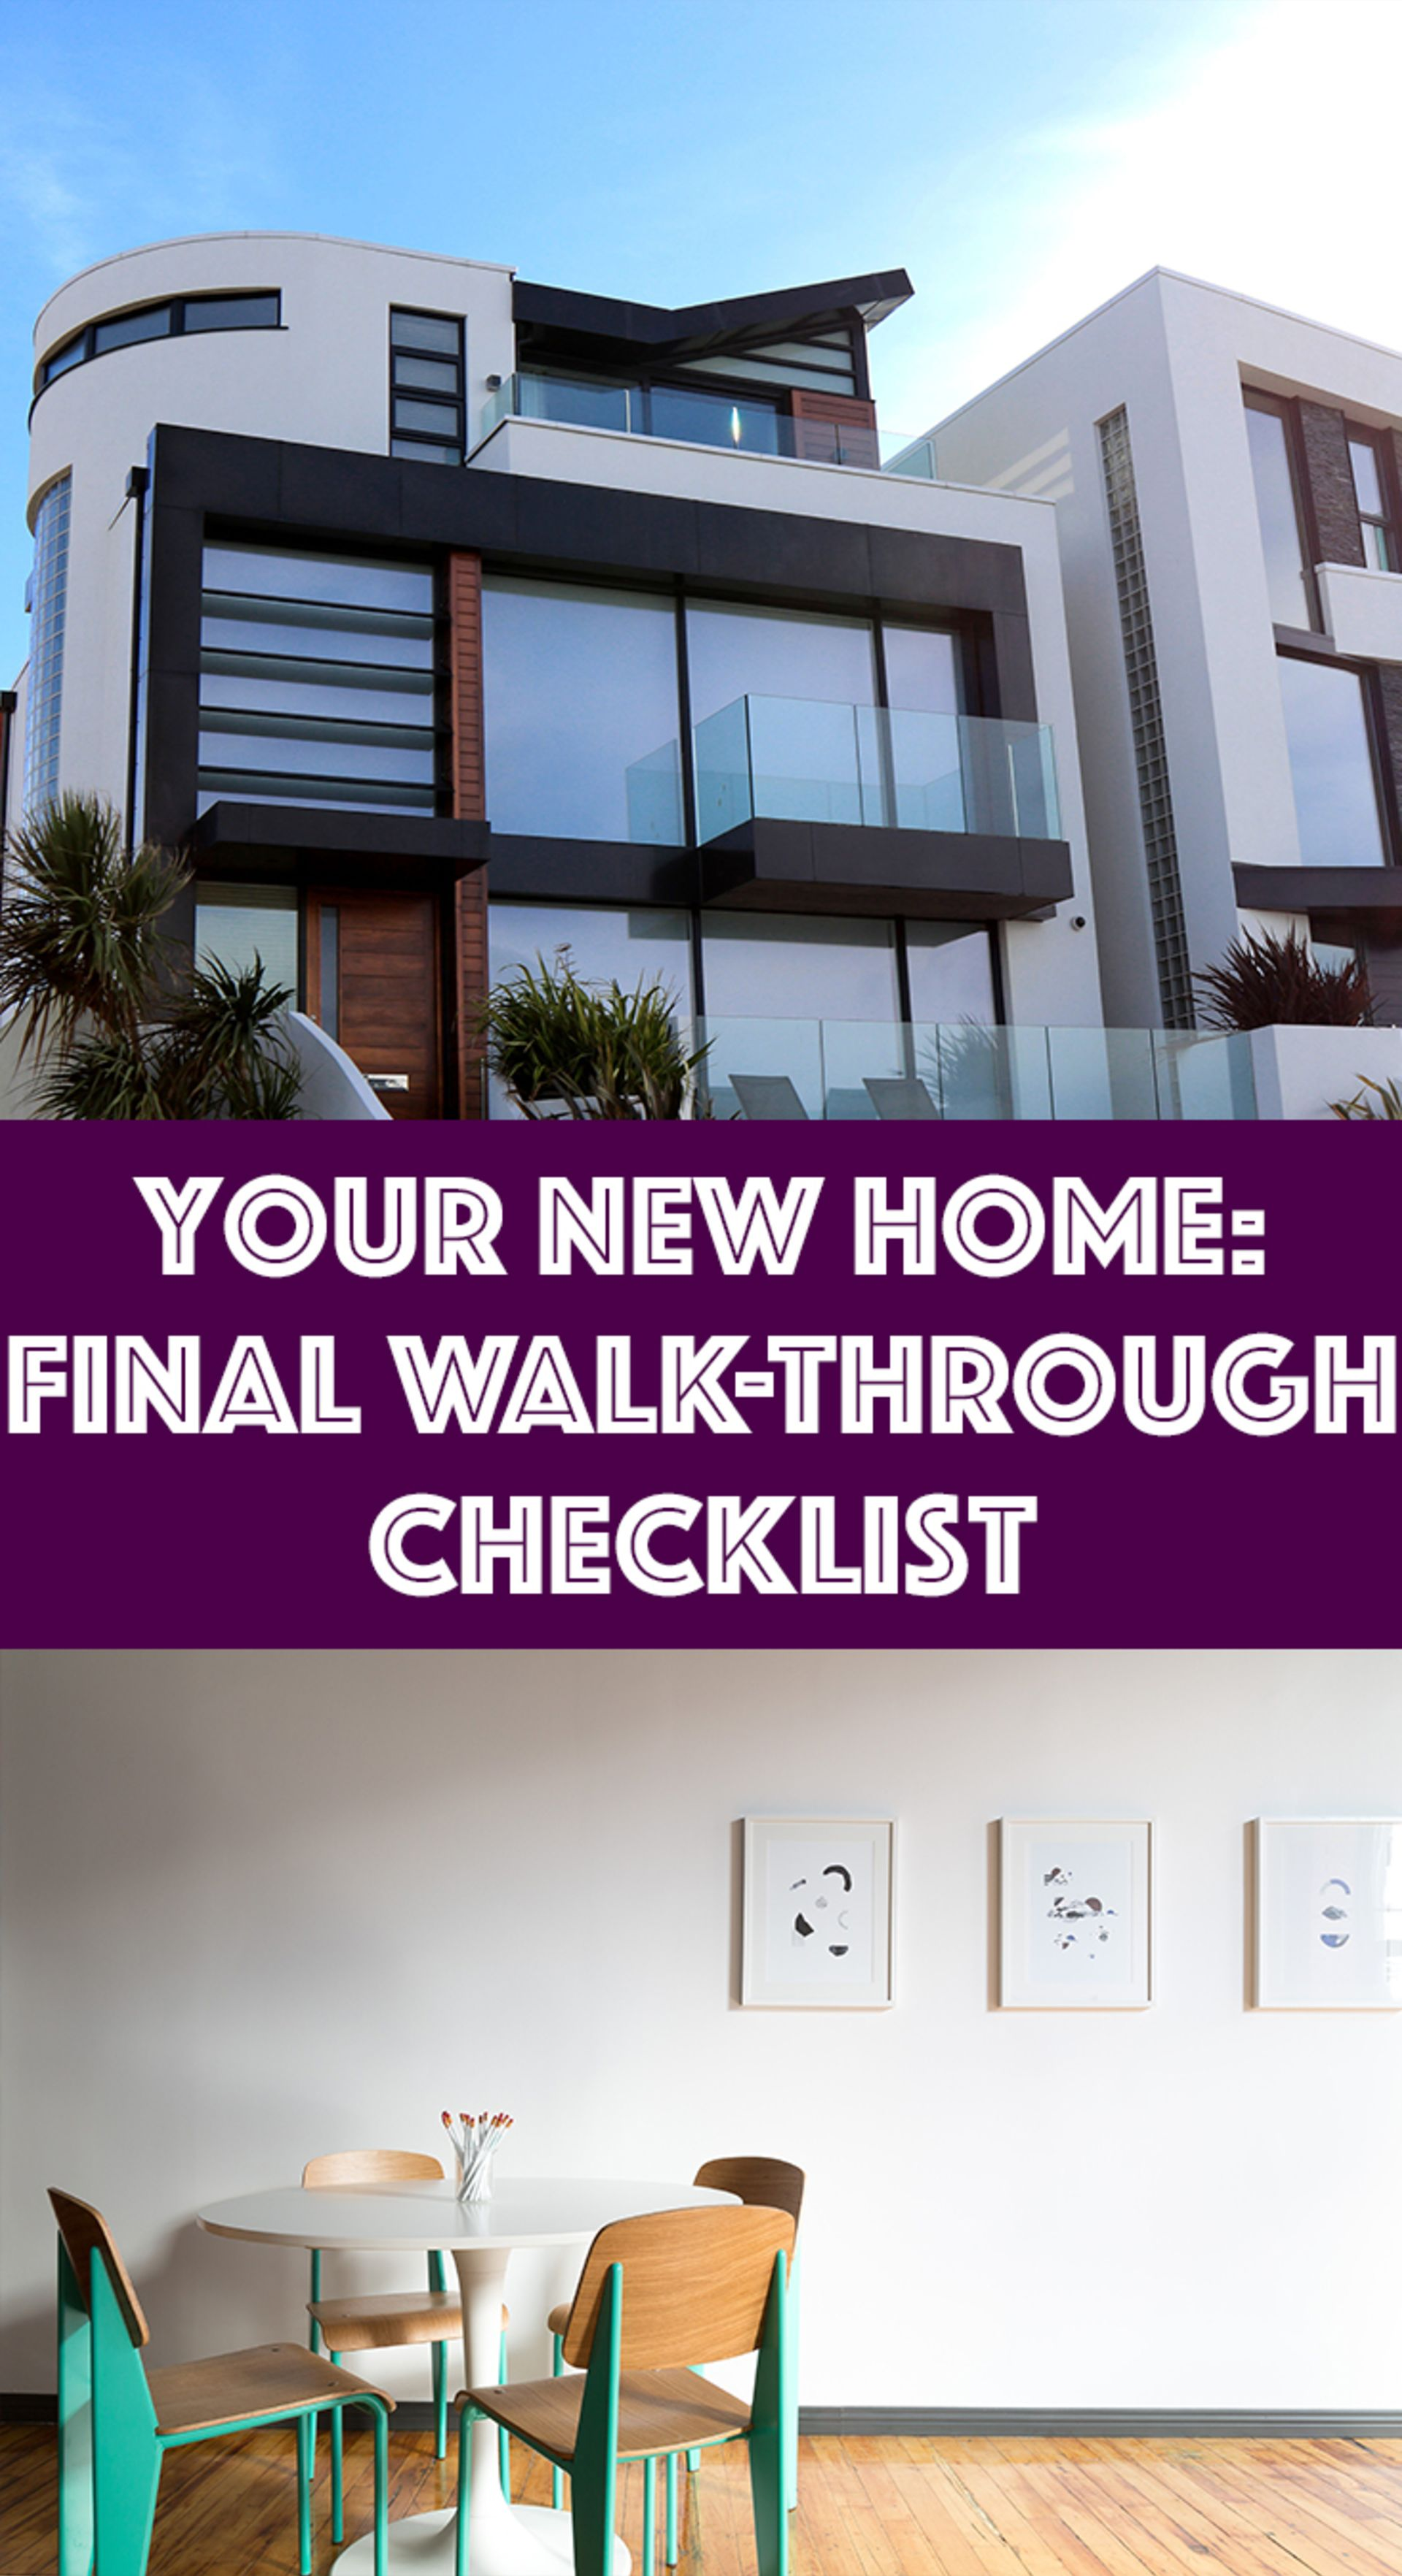 Your New Home: Final Walk-Through Checklist